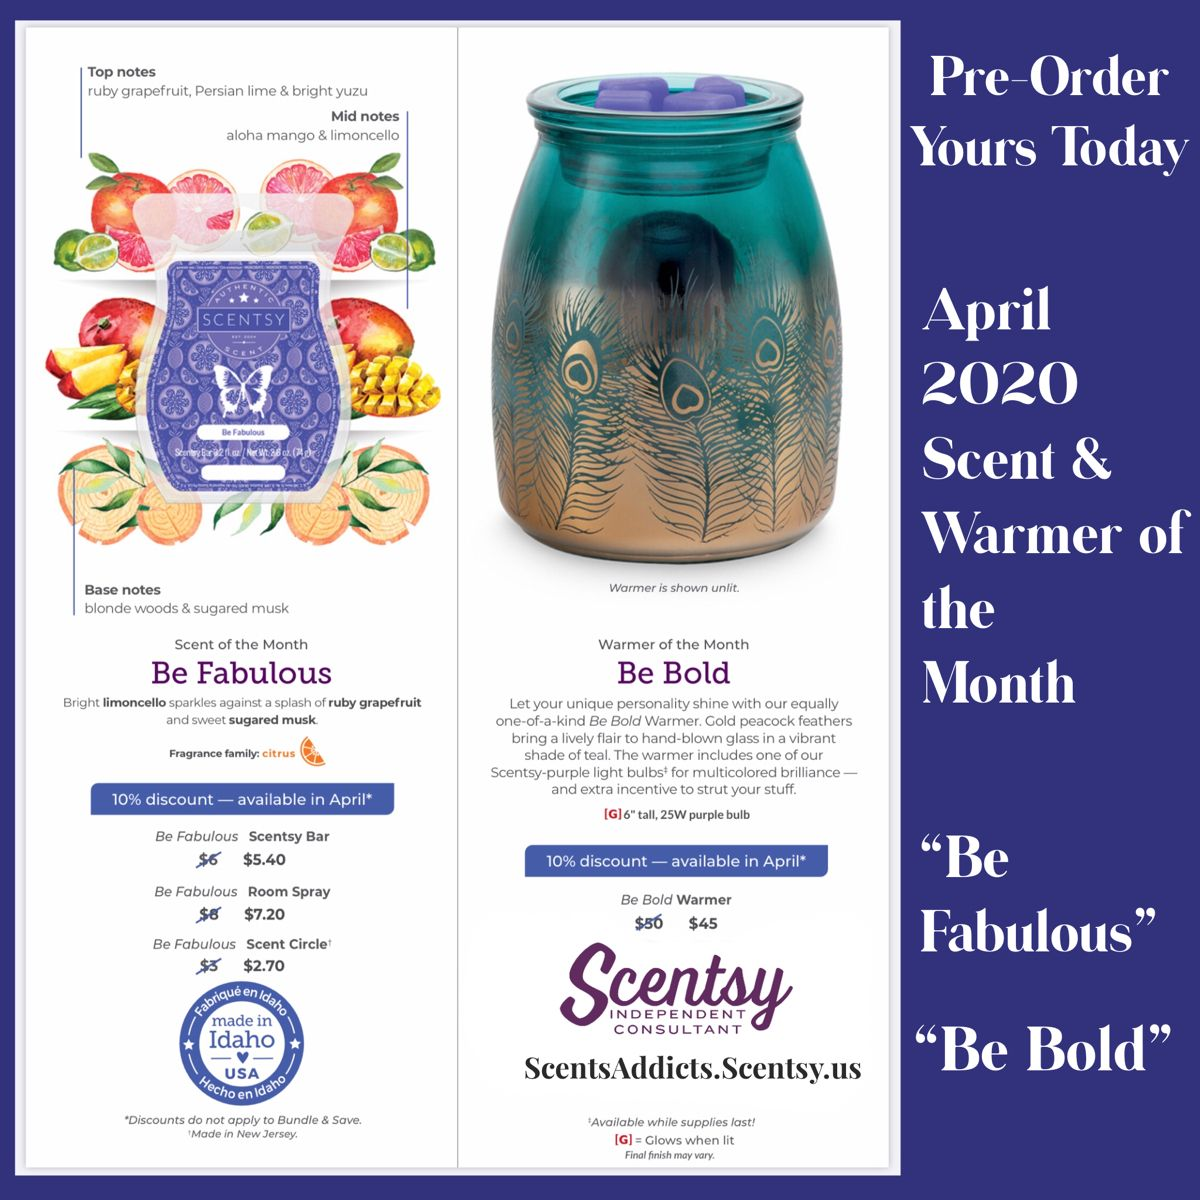 Our Scent and Warmer of the Month are available only while supply lasts and on sale during that particular month - so contact me to pre-order yours today #bebold #befabulous #scentsy #scentsyconsultant #scentsywarmer #wickless #candles #wicklesscandles #sale #buy #online #onlineshopping #onlinebusiness #scentedcandles #fragrance #fragrancecollection